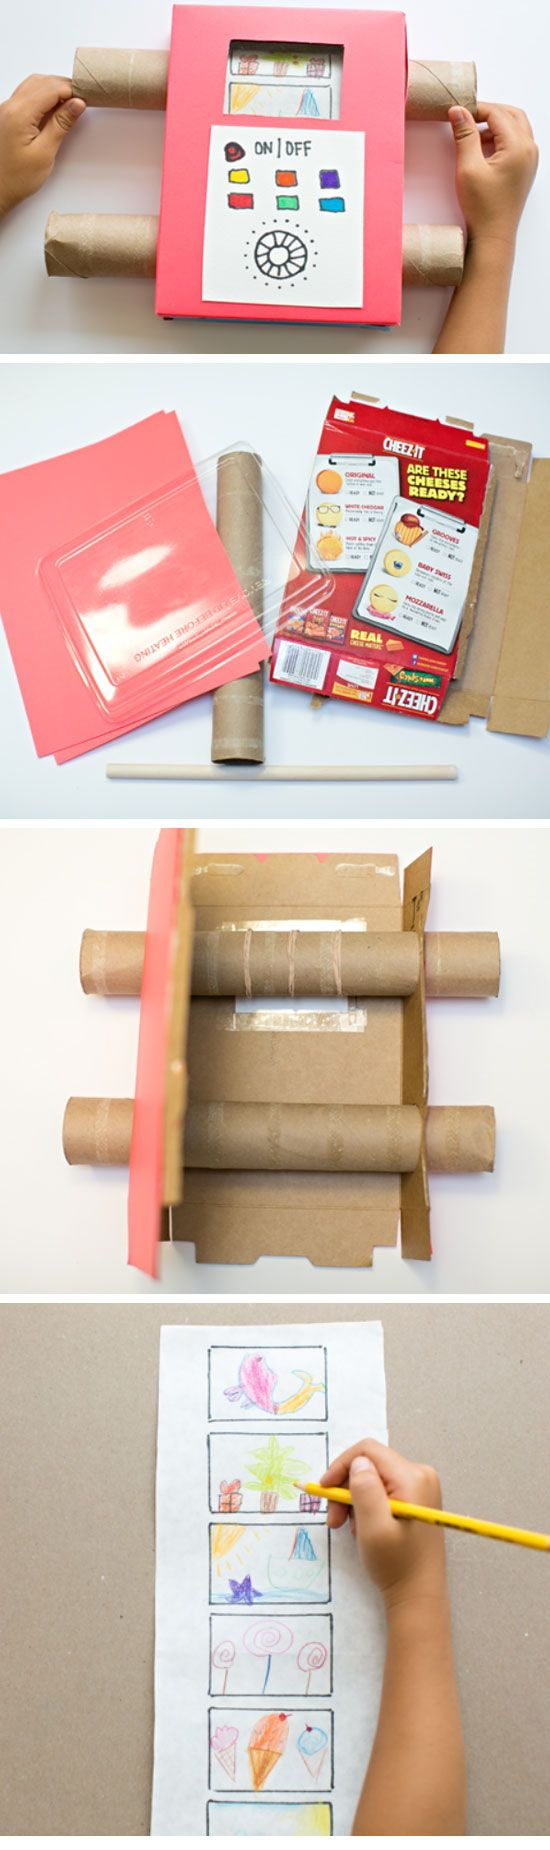 Easy Recycled TV Showing Off Your Kids Art | 18 DIY Summer Art Projects for Kids to Make | Easy Art Projects for Toddlers